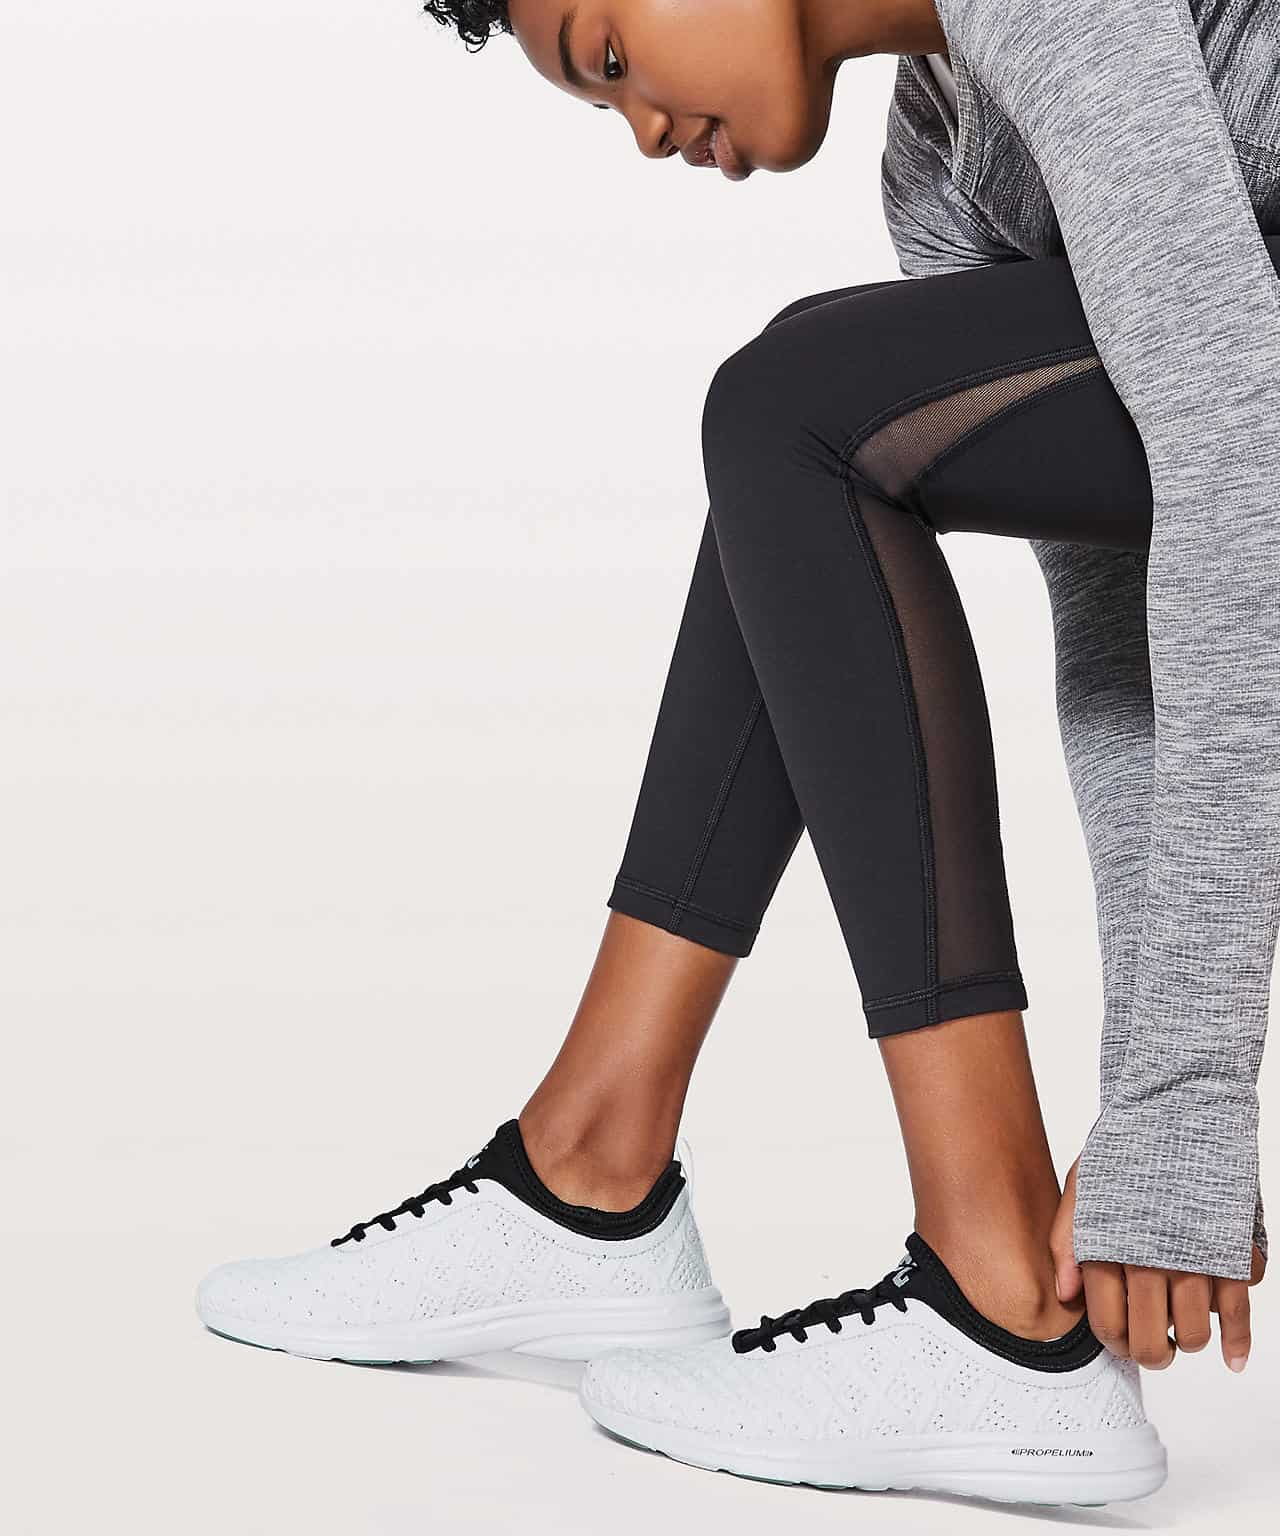 lululemon on sale